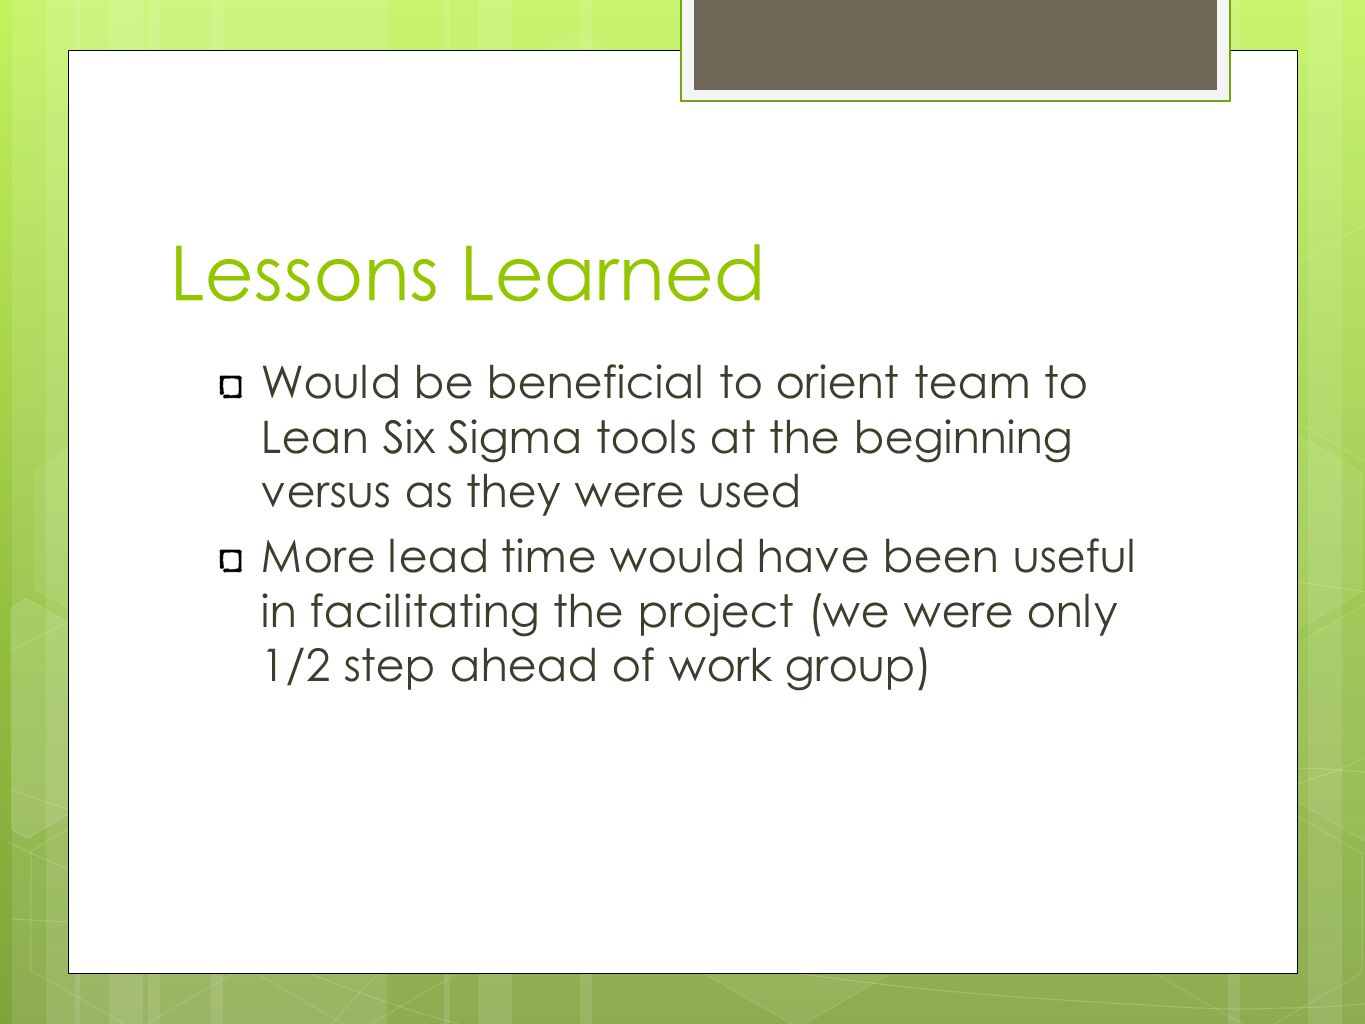 Lessons Learned Would be beneficial to orient team to Lean Six Sigma tools at the beginning versus as they were used More lead time would have been useful in facilitating the project (we were only 1/2 step ahead of work group)